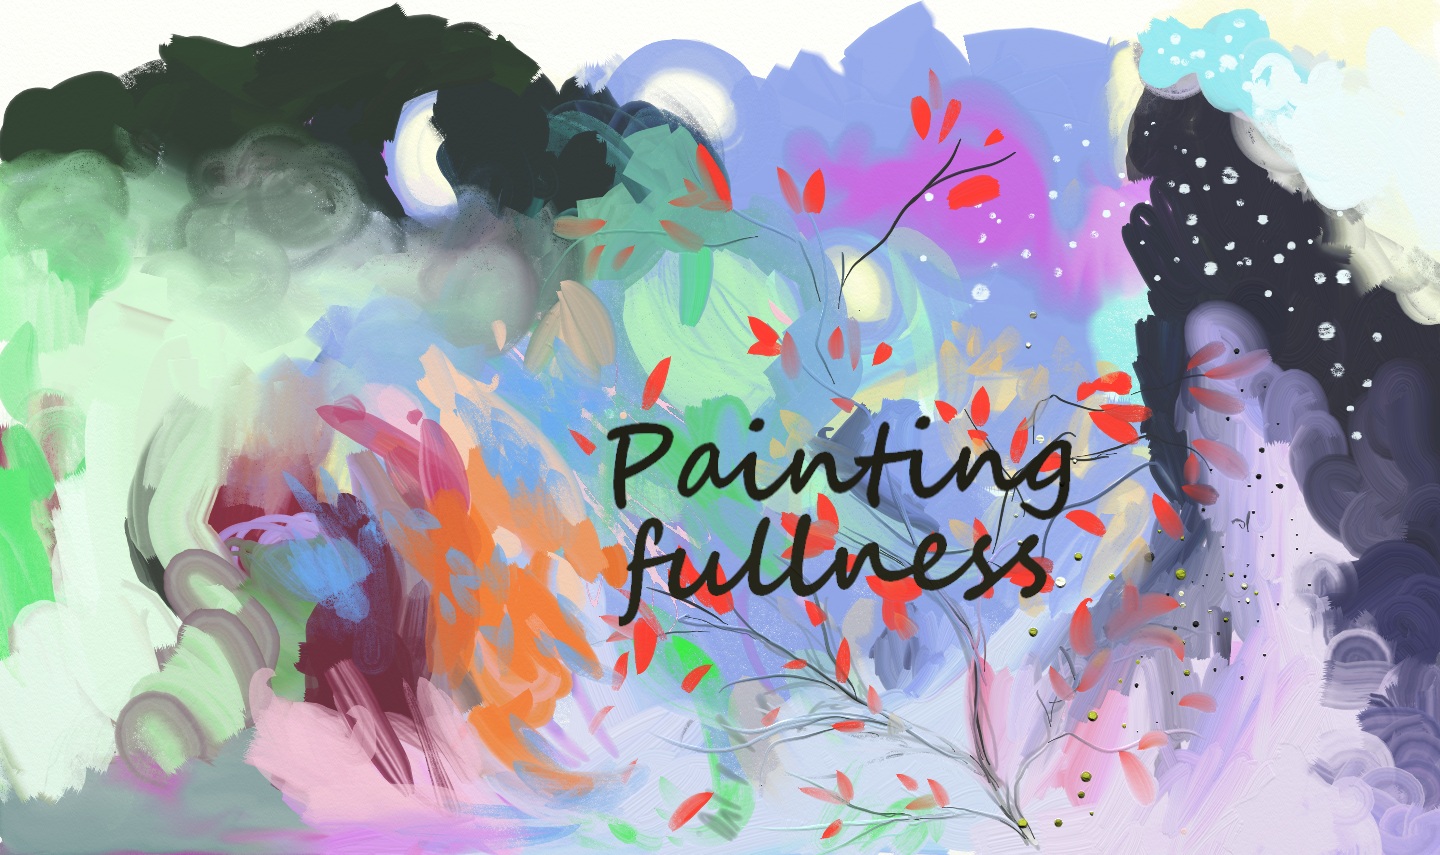 Painting Fullness - BLOG de ericatfresco